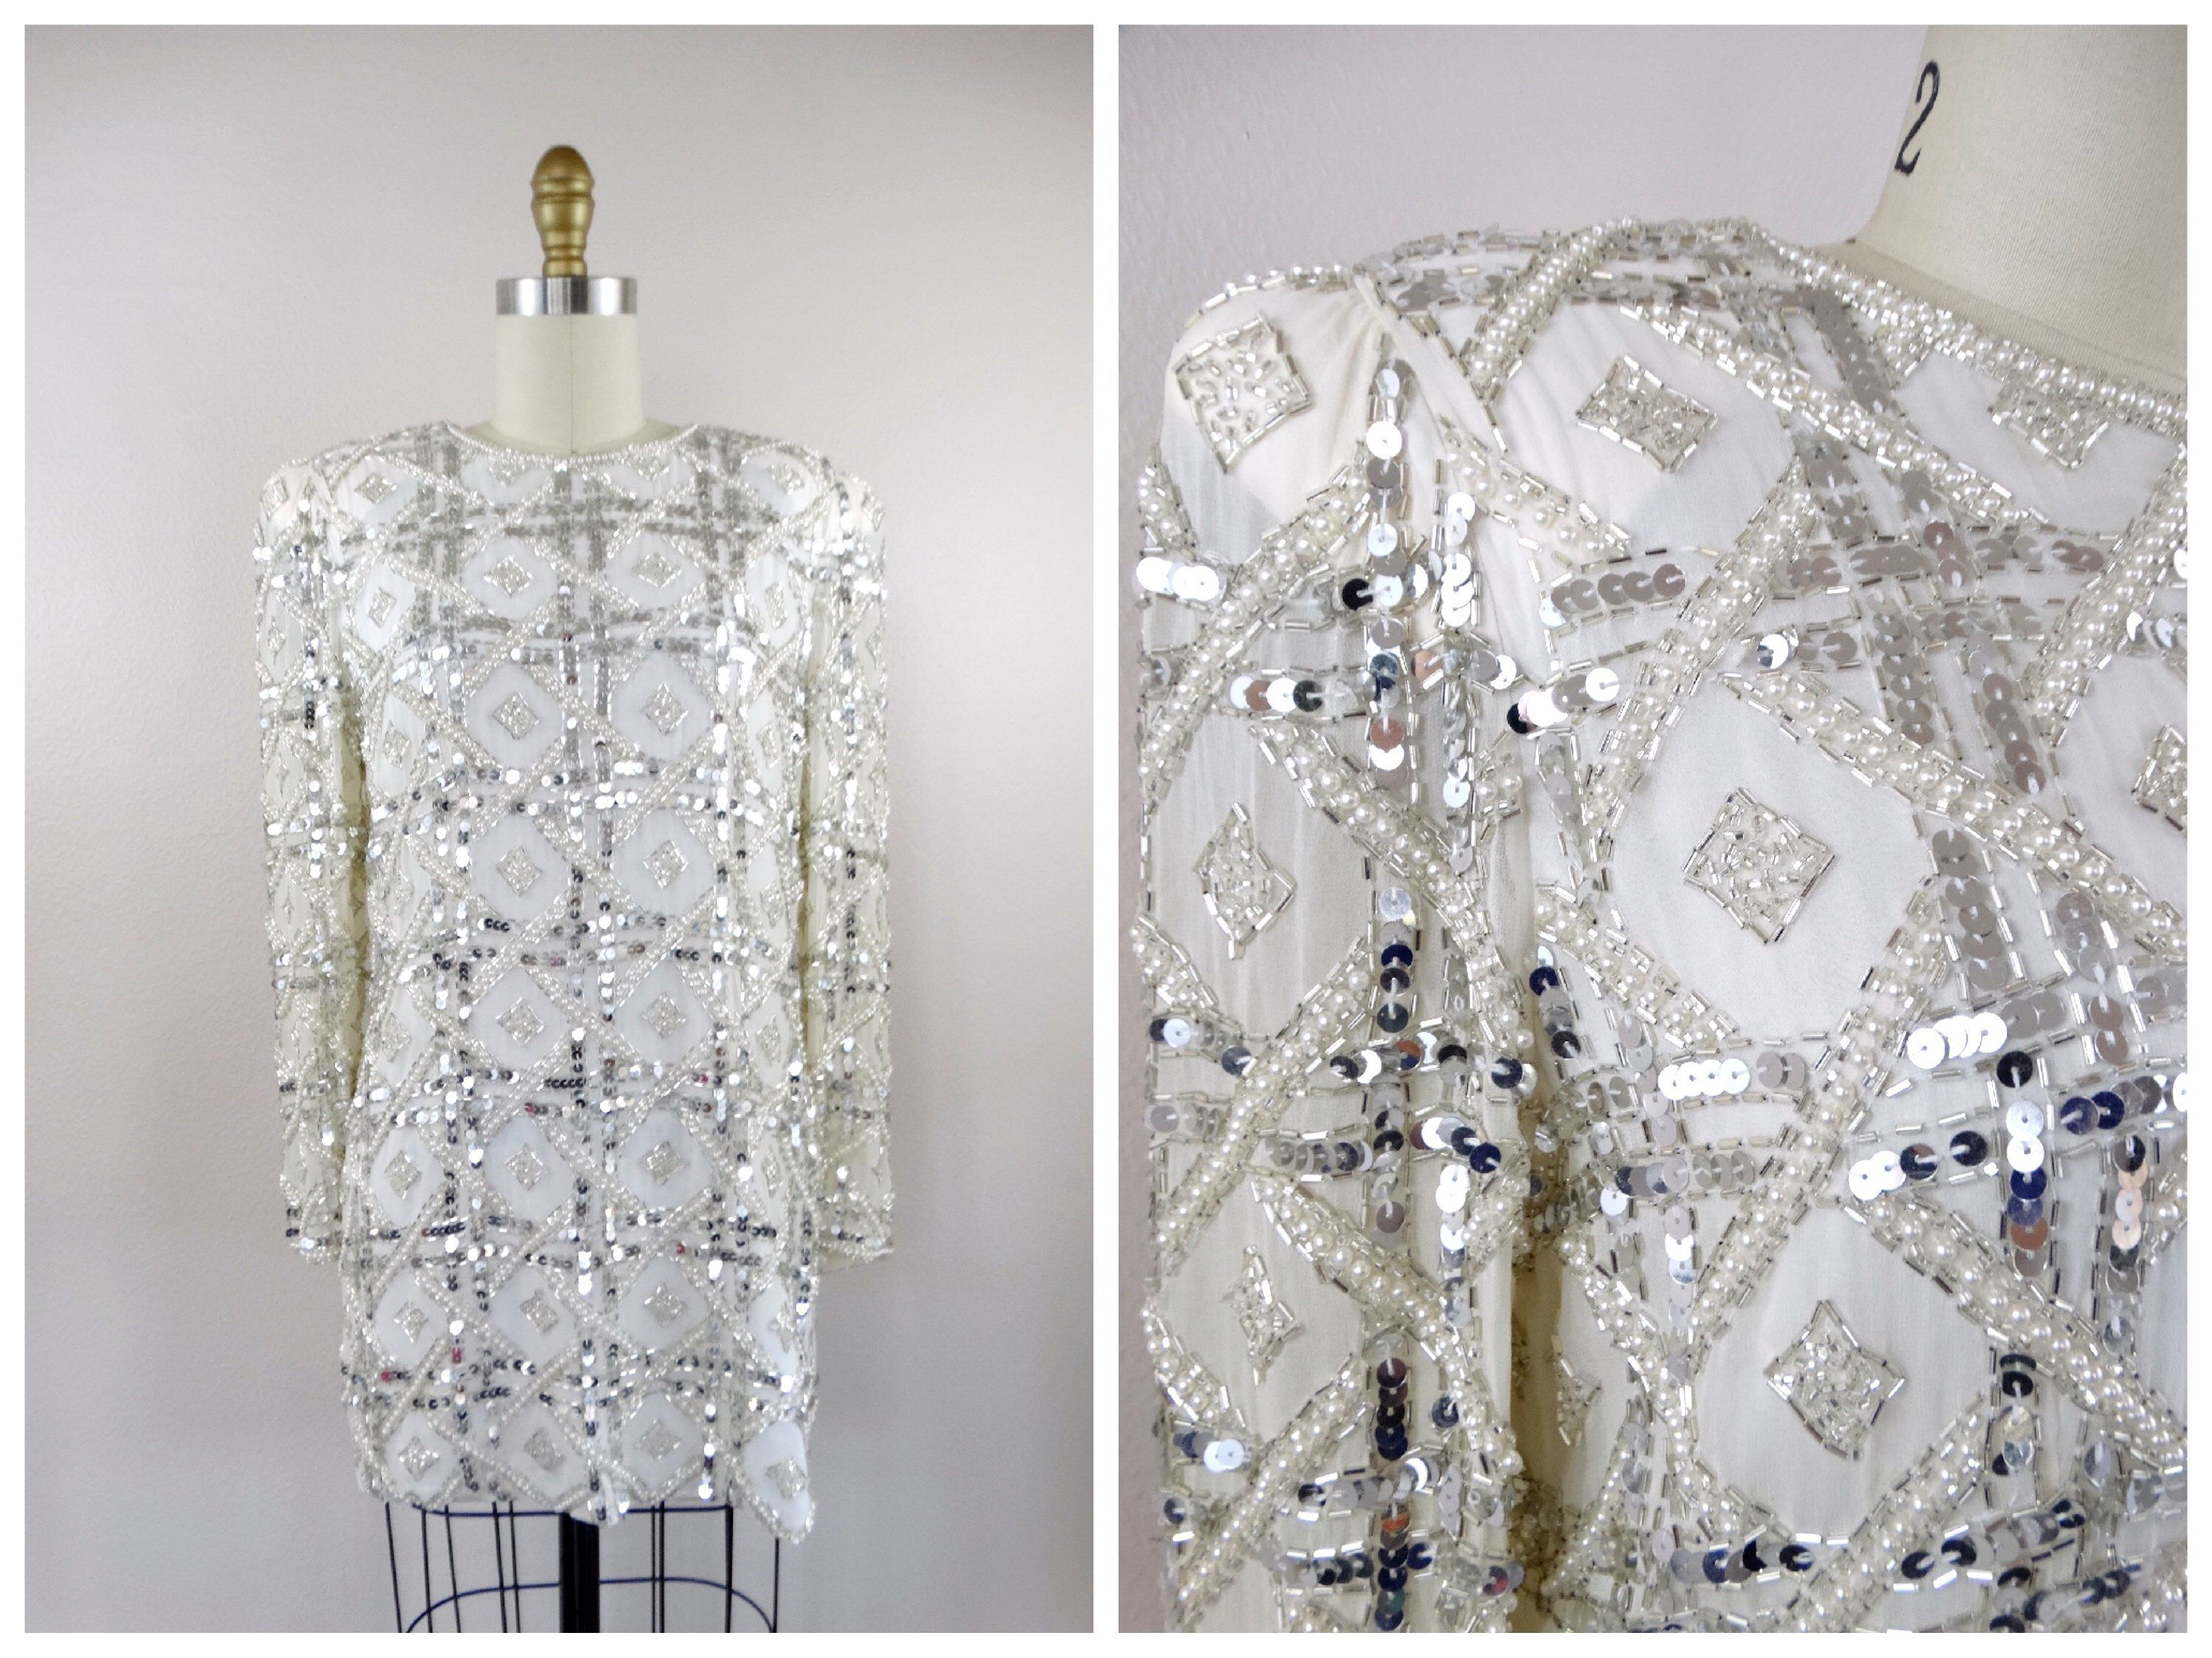 7b33b450 Vintage Pearl Beaded Sequin Embellished Mini Dress / Silver Sequined White  Silk Long Sleeved Tunic Top or Micro Mini Dress S XS